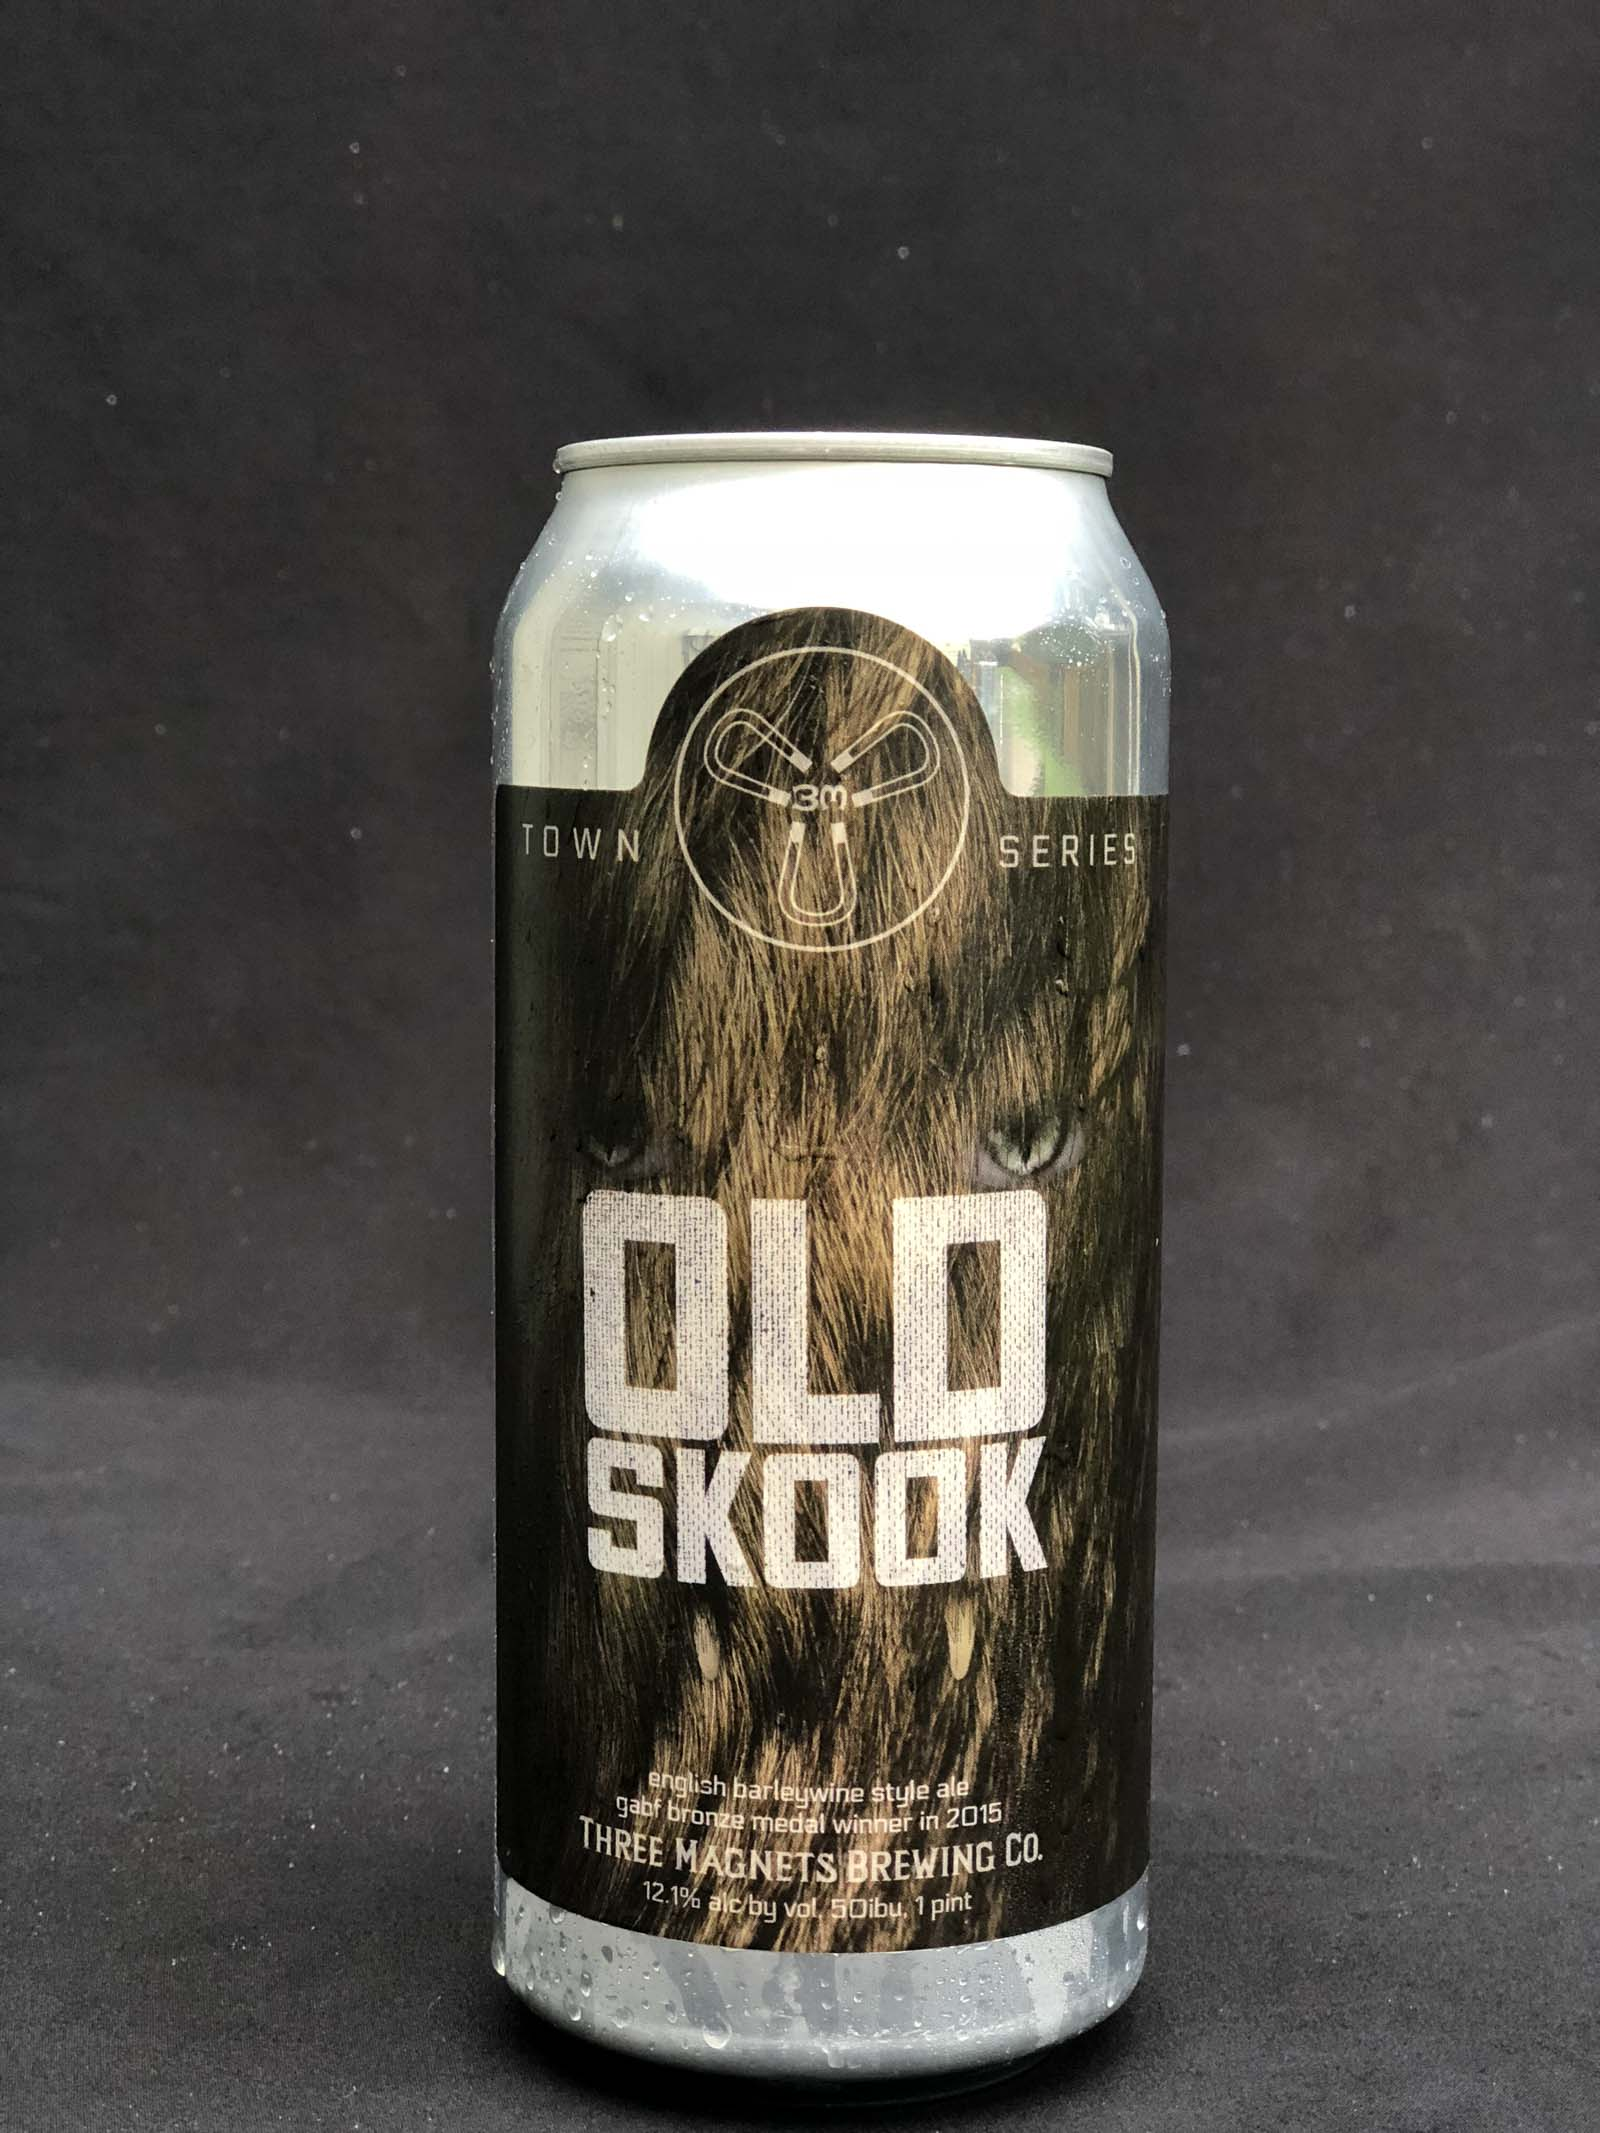 3 Magnets Brewing Old Skook Barleywine